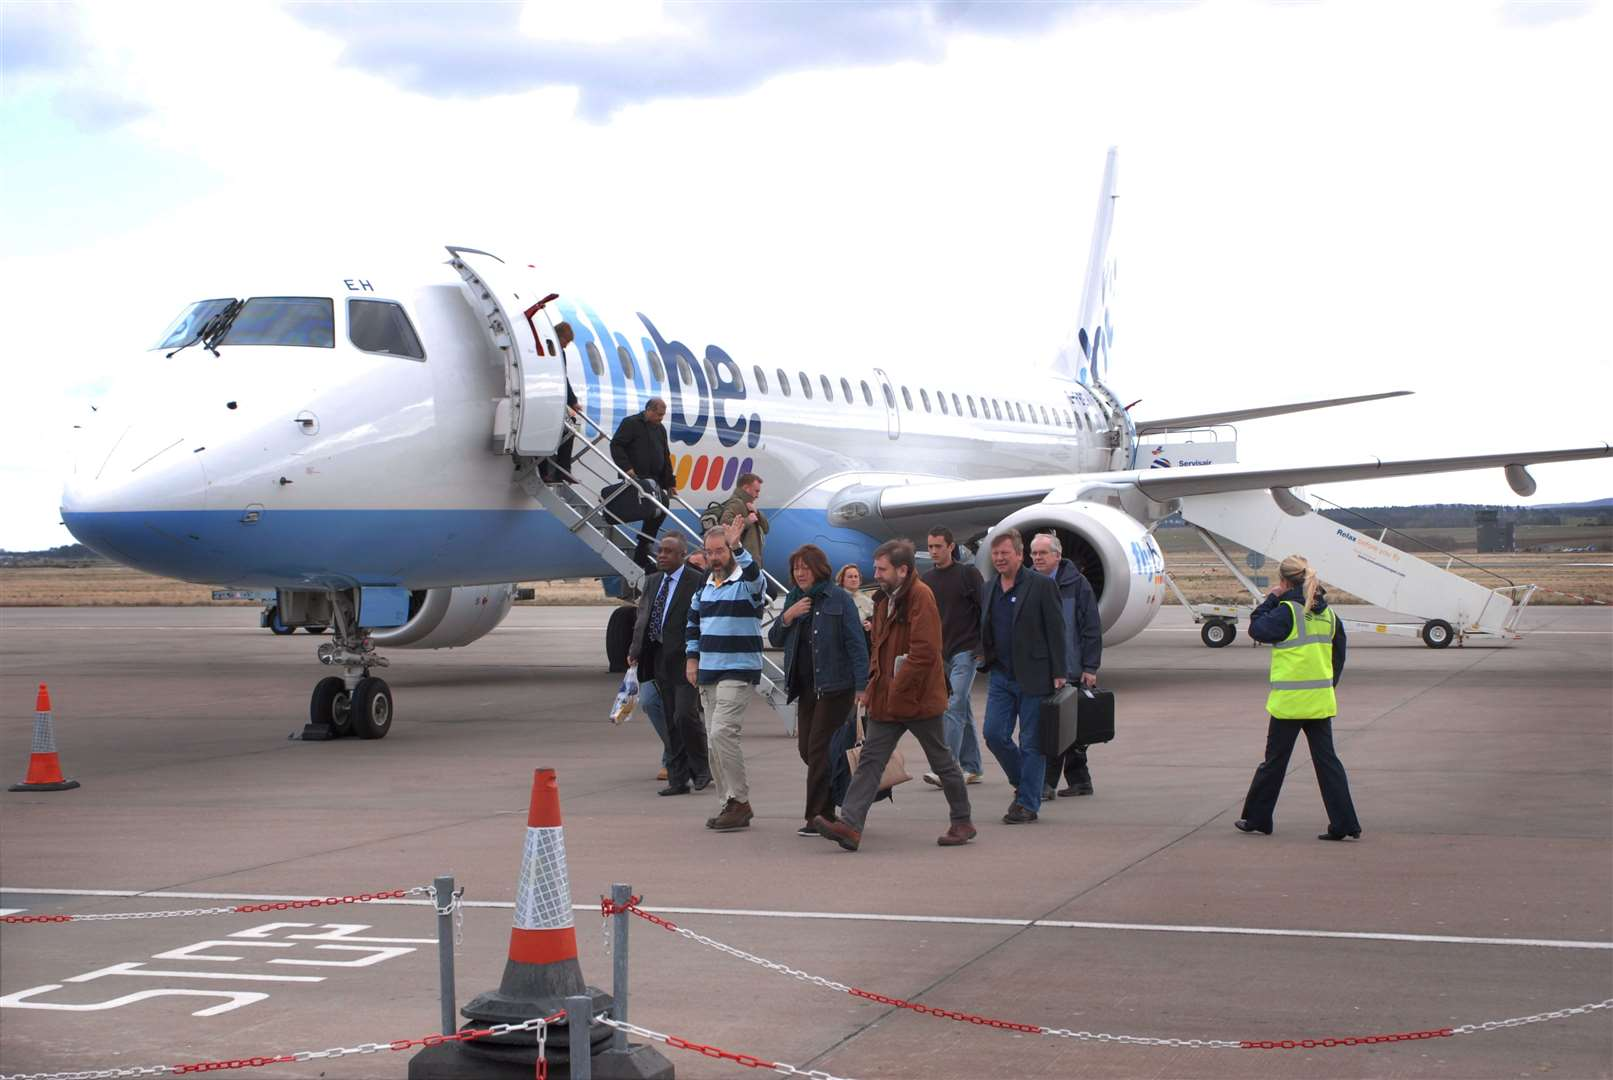 Passengers arrive at Inverness Airport on a a Flybe jet.